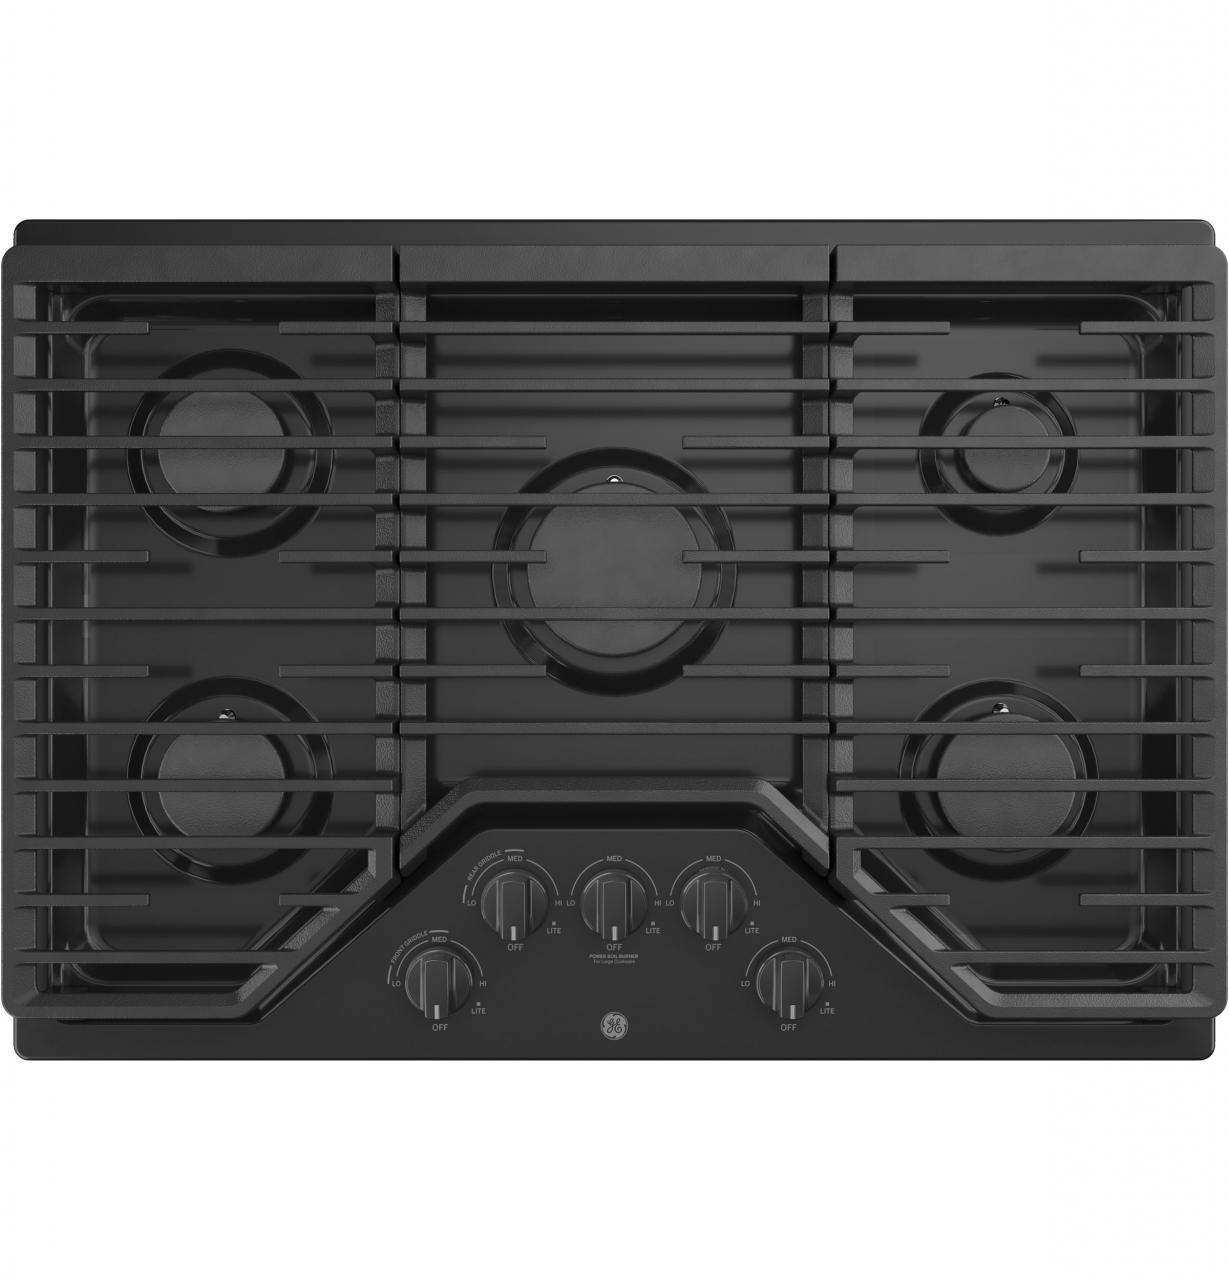 Ge 30 Built In Gas Cooktop Black Jgp5030dlbb